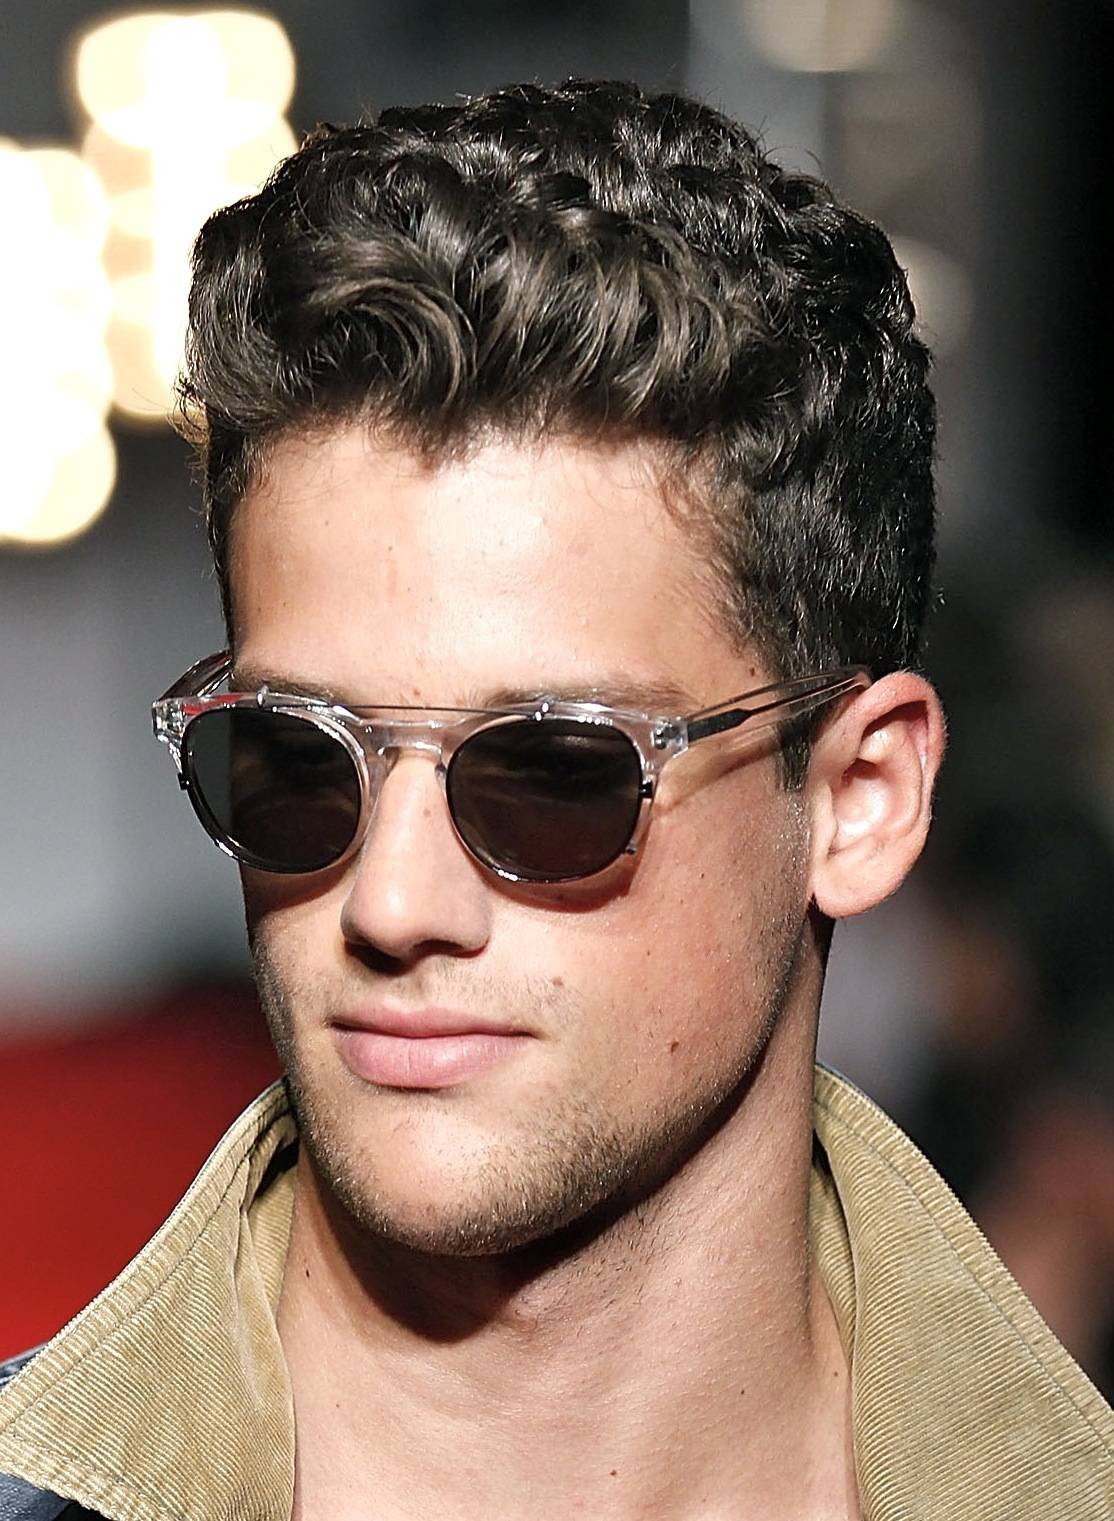 Best ideas about Mens Hairstyle Curly . Save or Pin Rachael Beauty Hair Stylist Top 25 Men s Hair Styles Now.